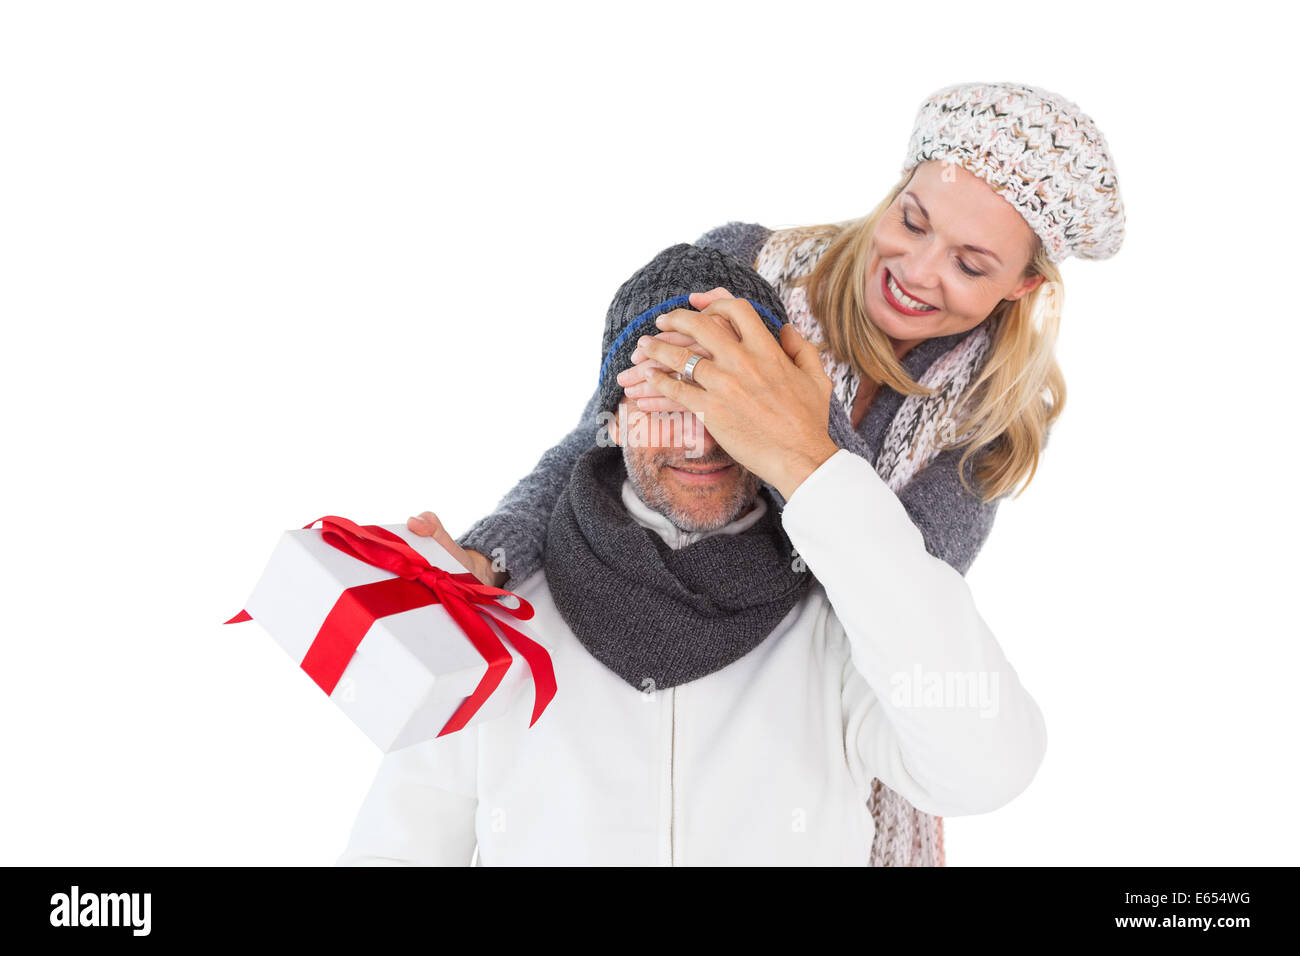 Happy woman holding gift while covering husbands eyes - Stock Image